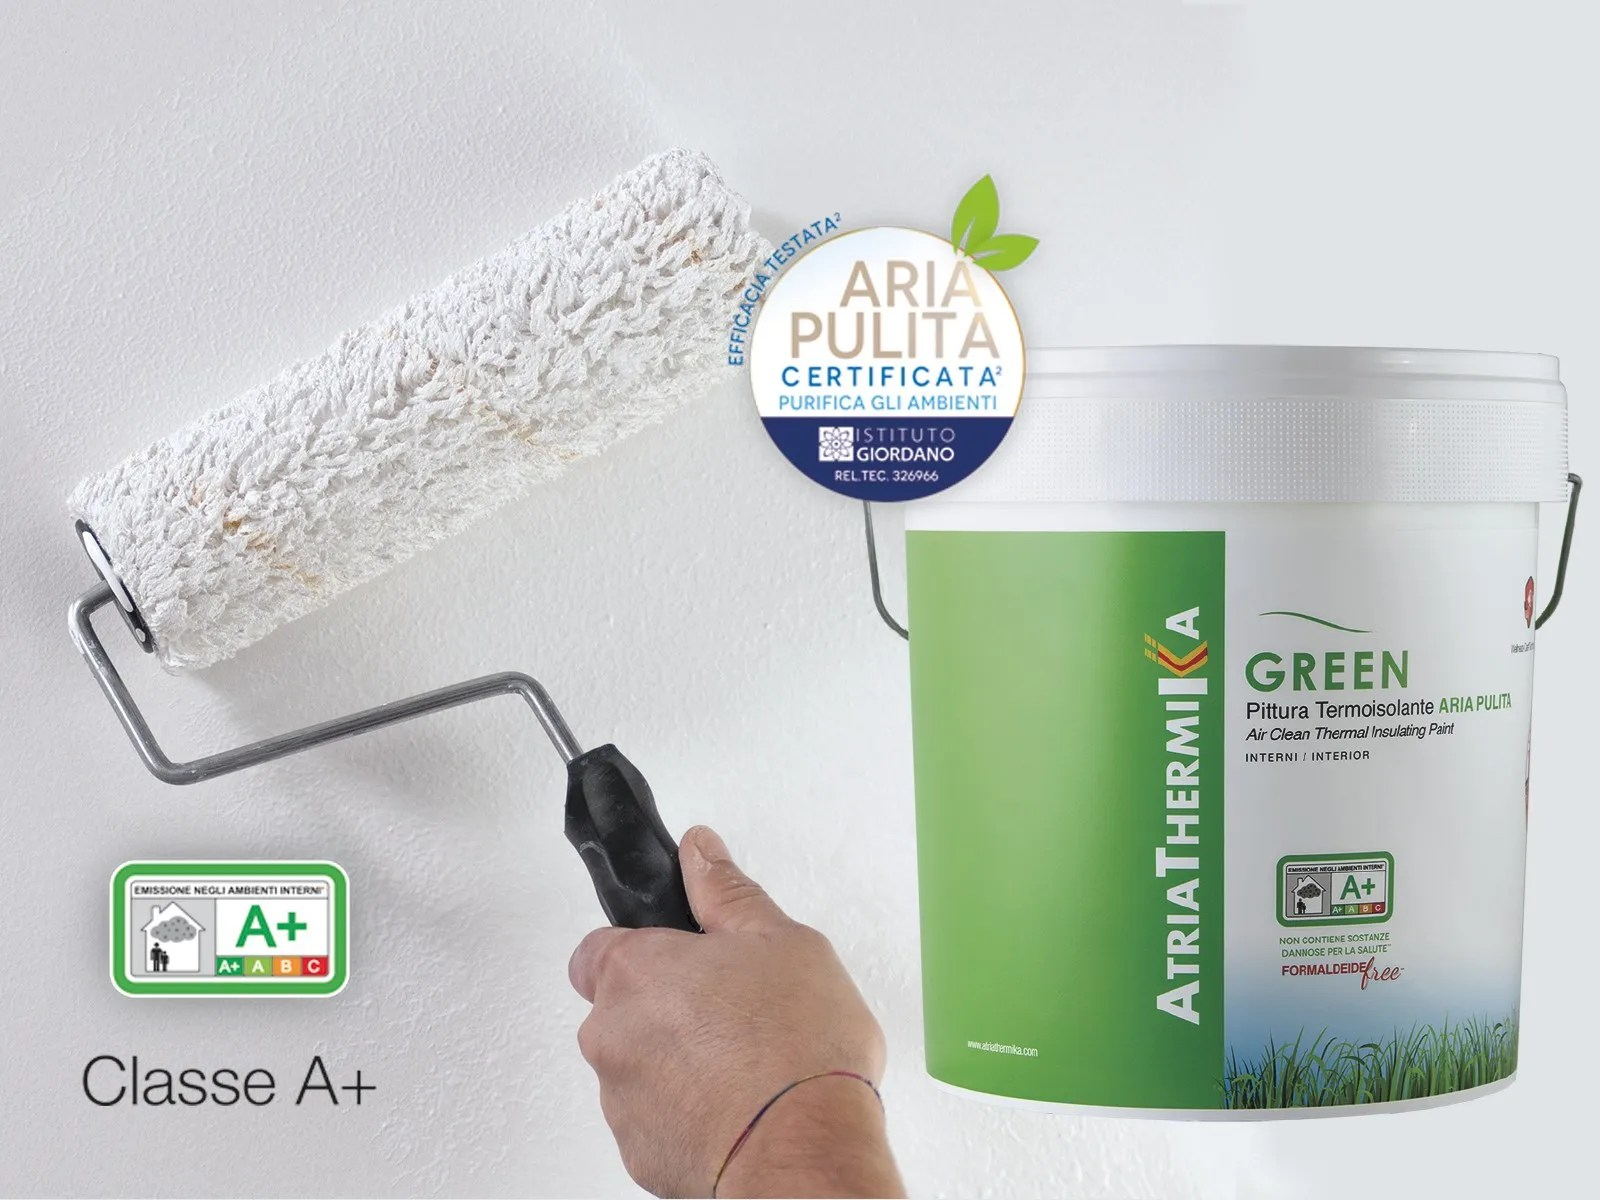 Pittura Termica Atria Paint Tradition And Innovation By Atria